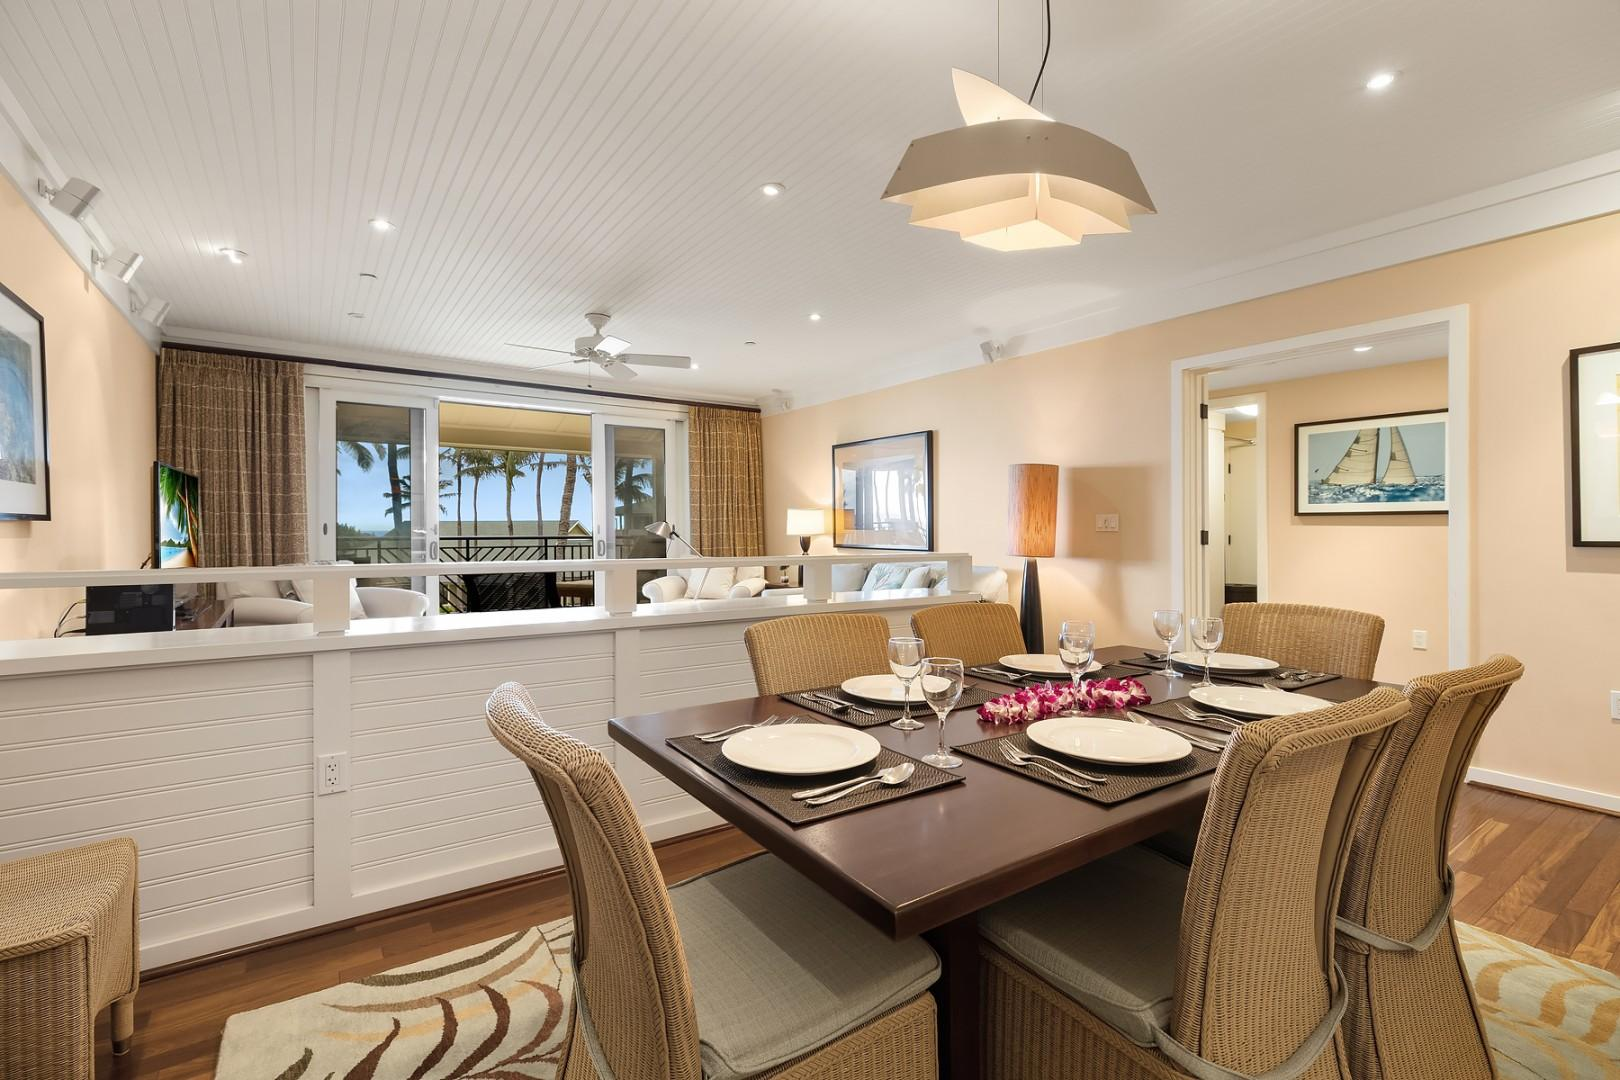 Separate dining area with seating for 6